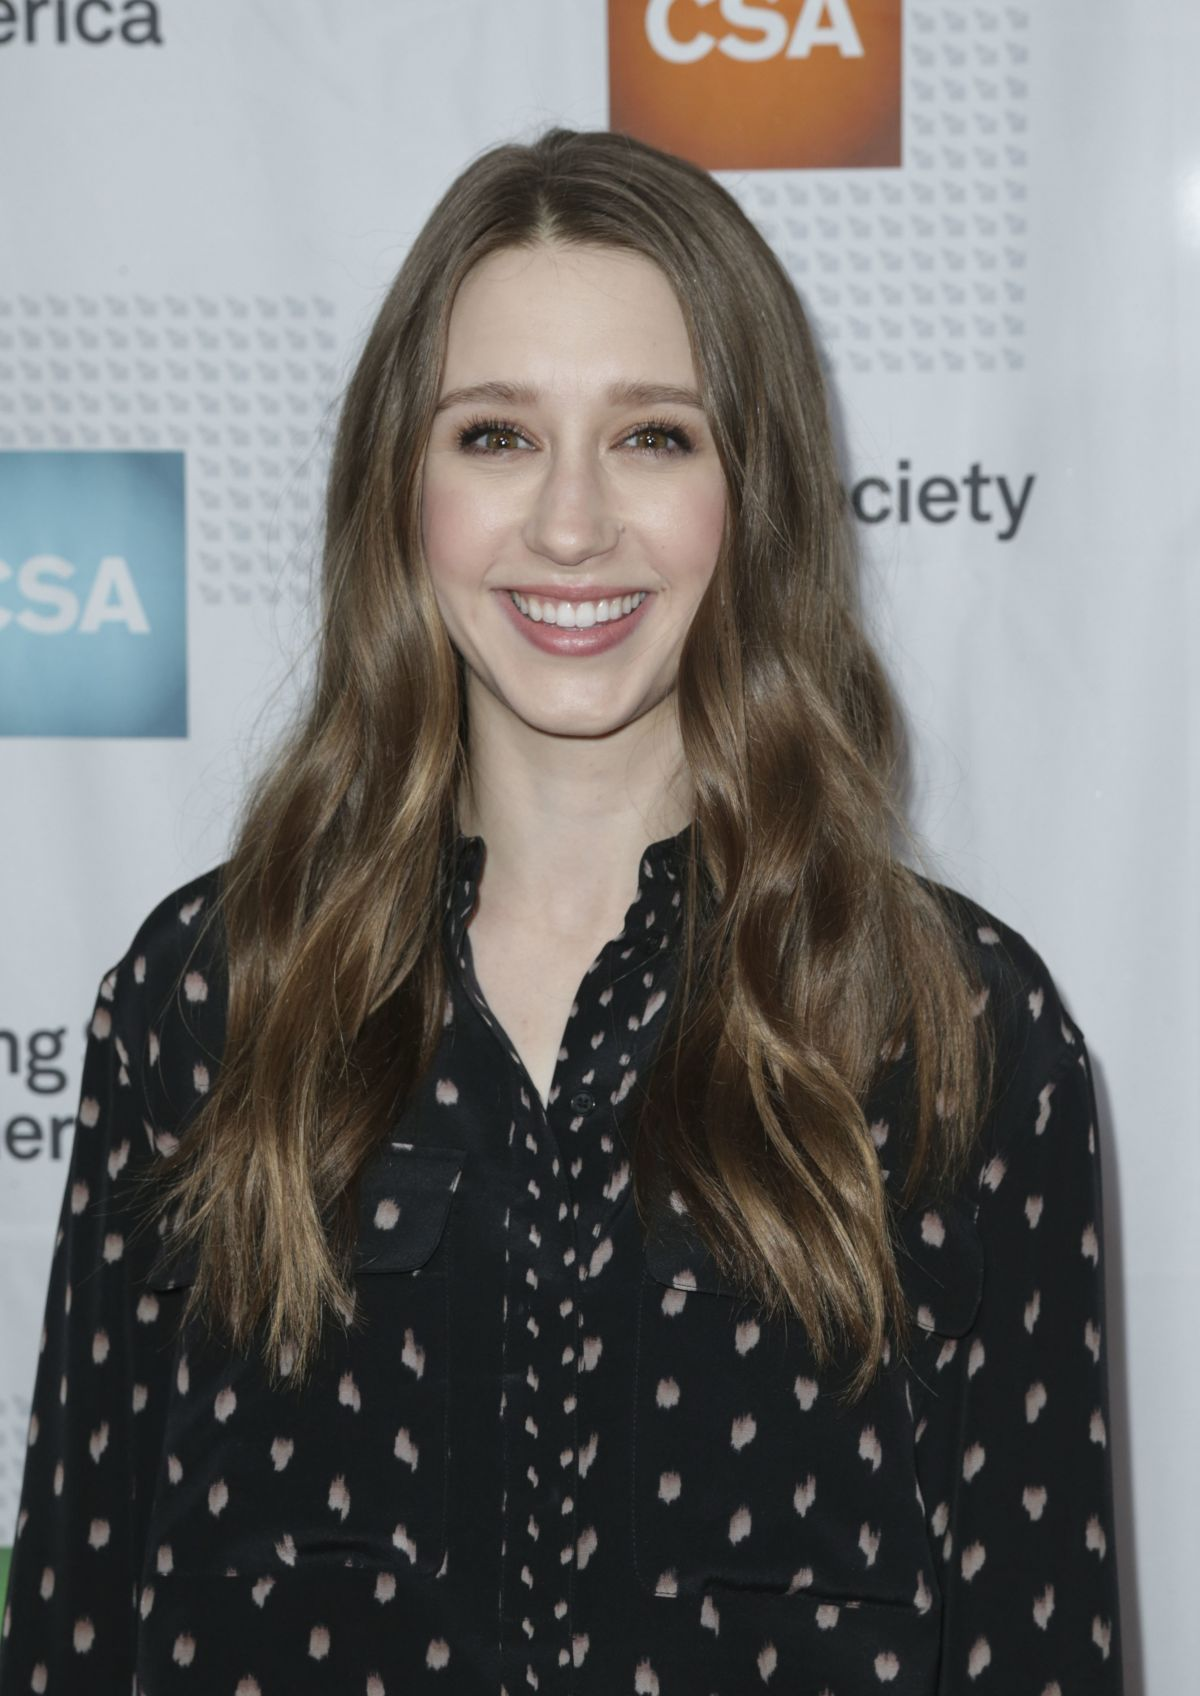 TAISSA FARMIGA at 32nd Annualr Artios Awards in Los Angeles 01/19/2017